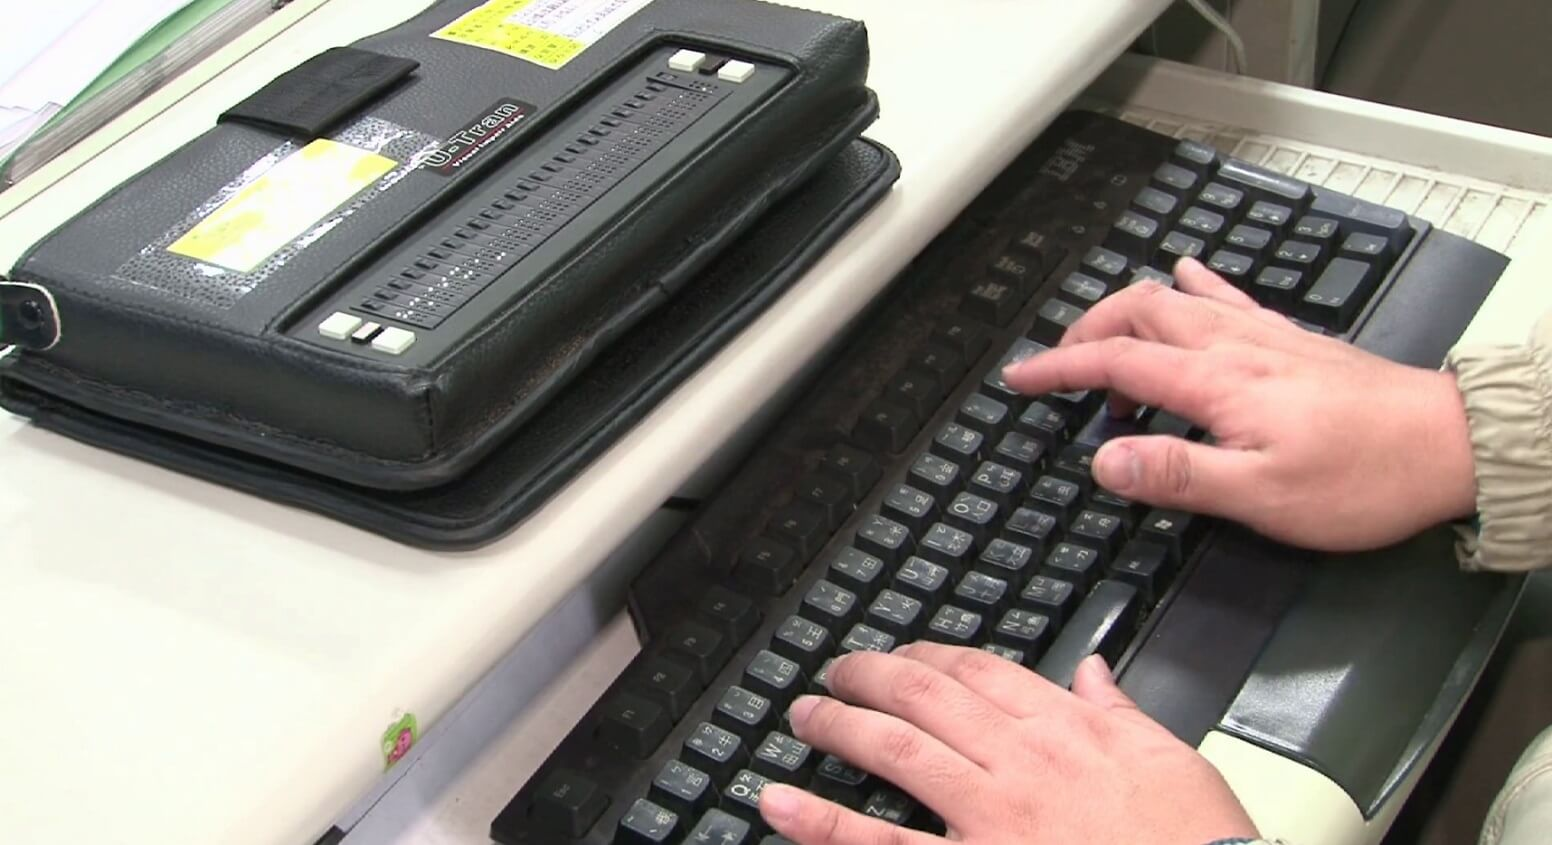 braille displays accessibility keyboard